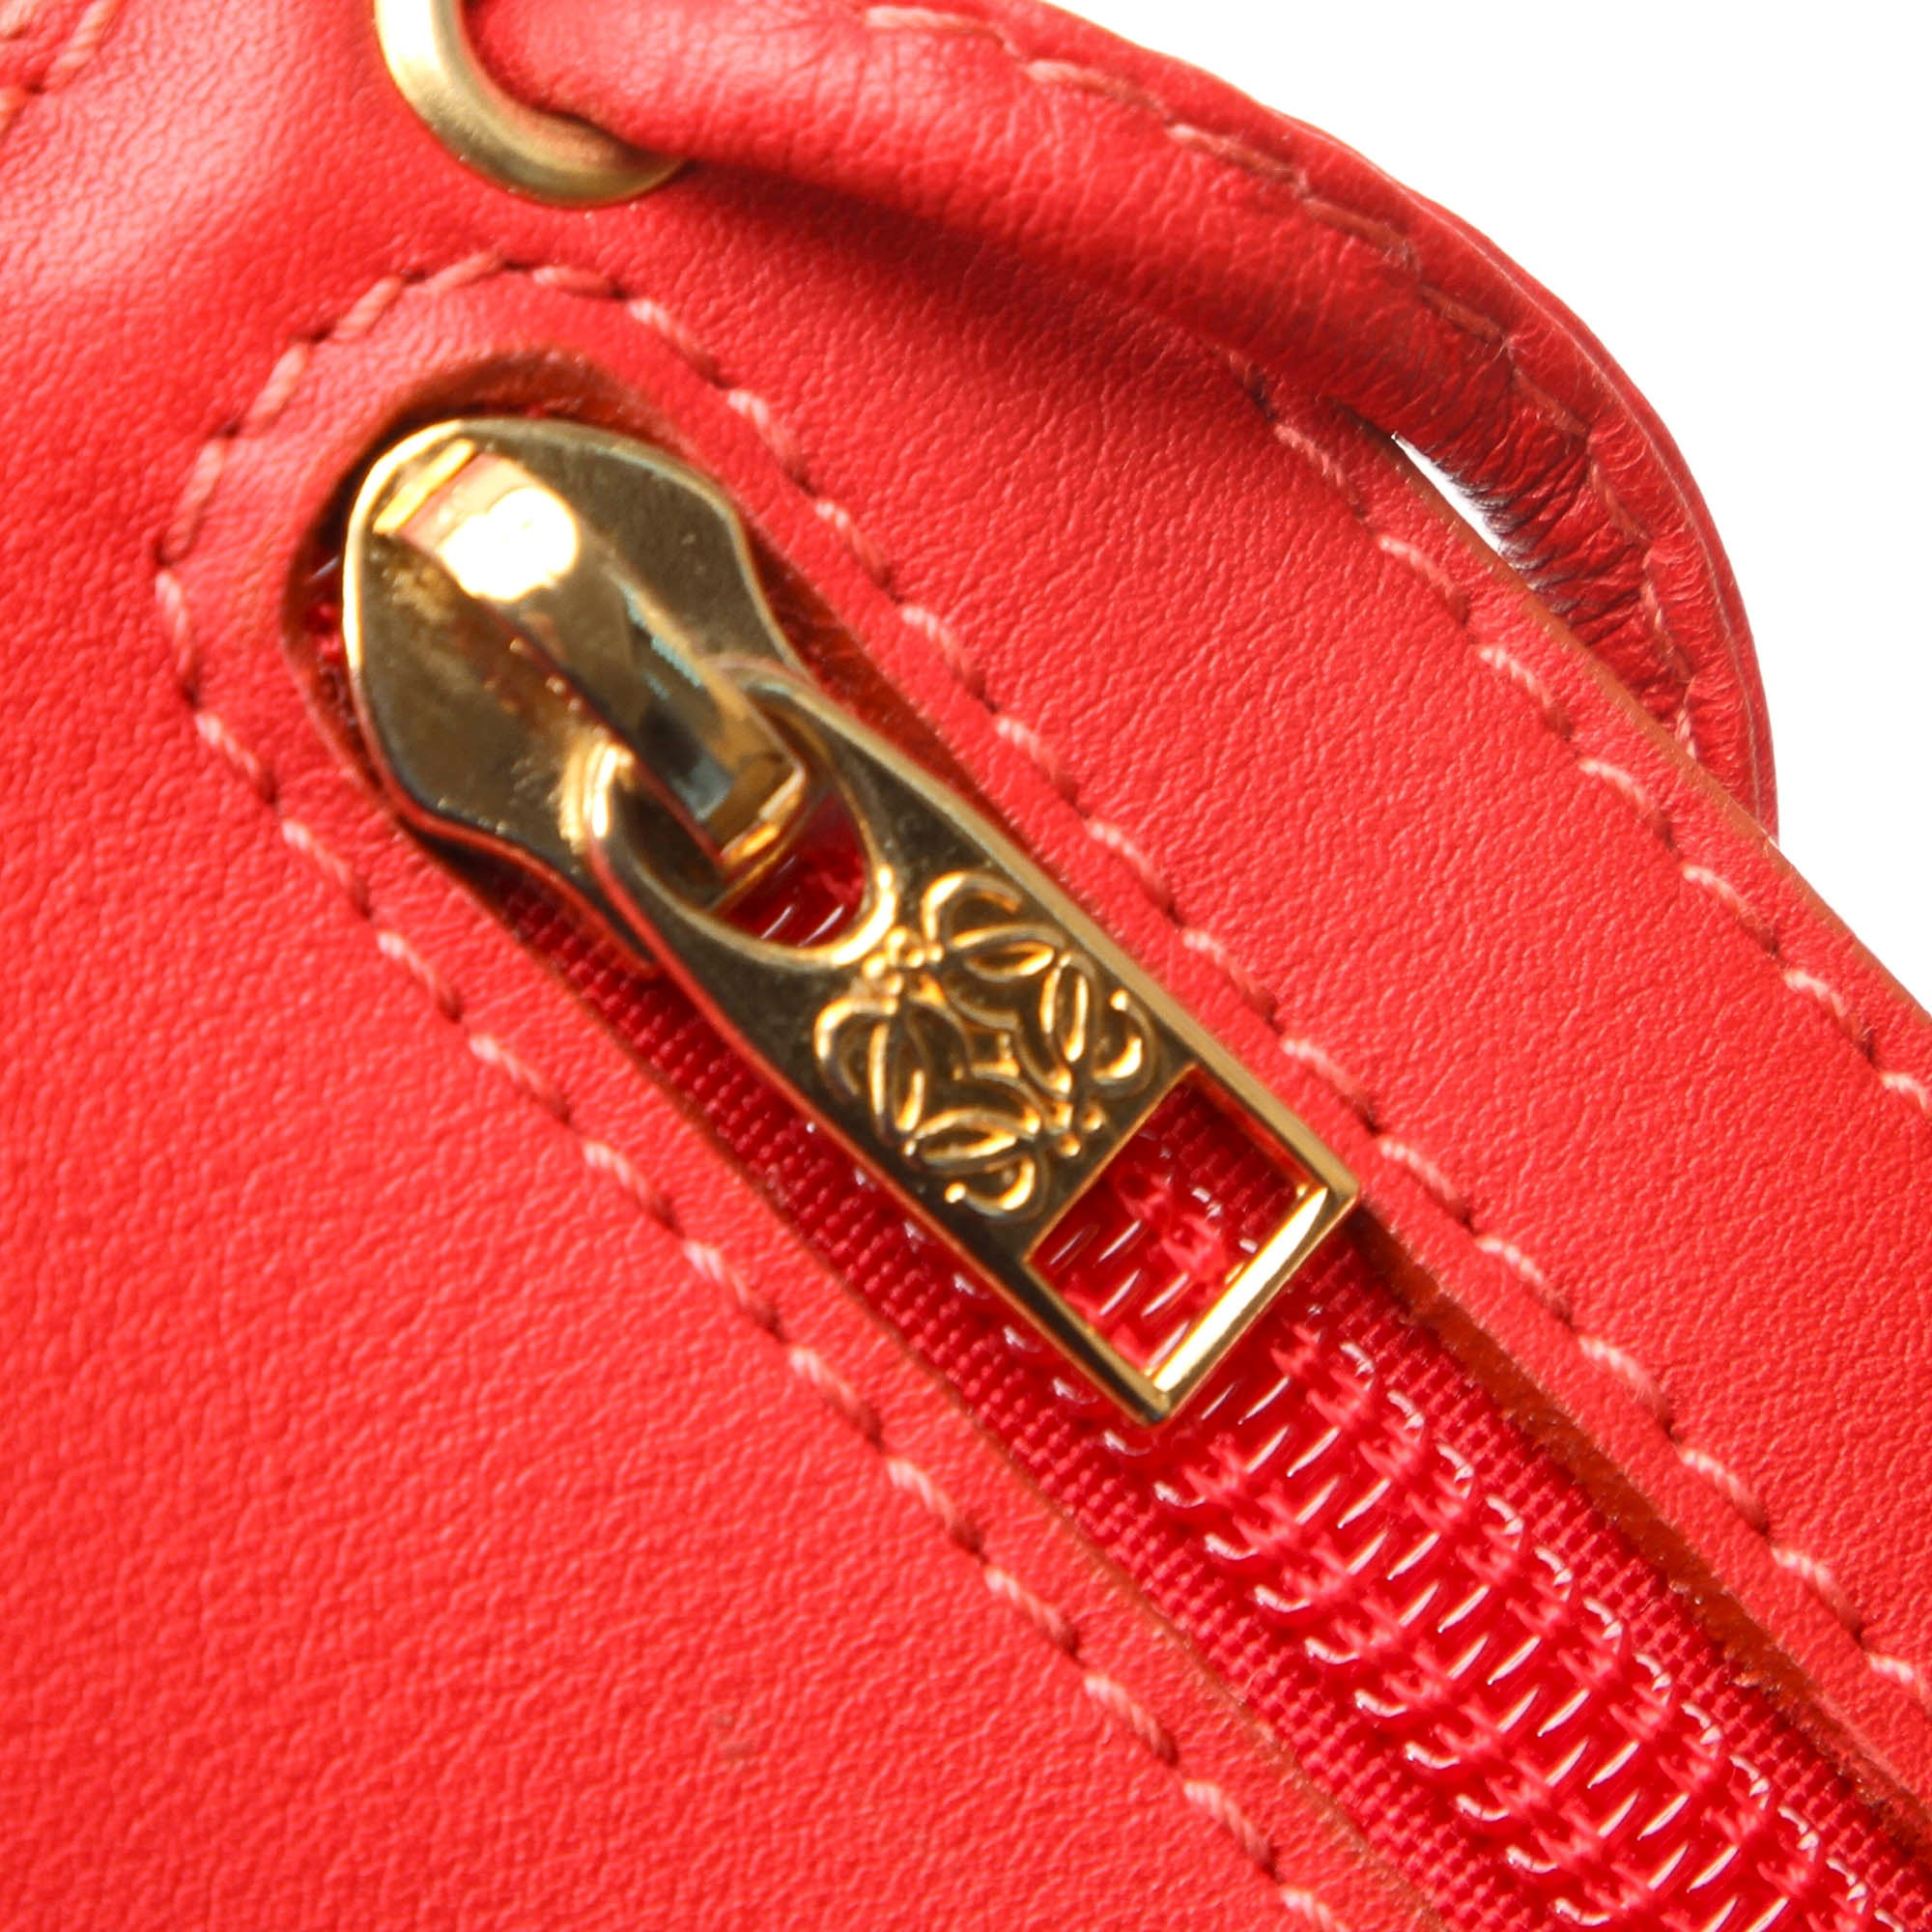 Loewe Red Drawstring Leather Backpack